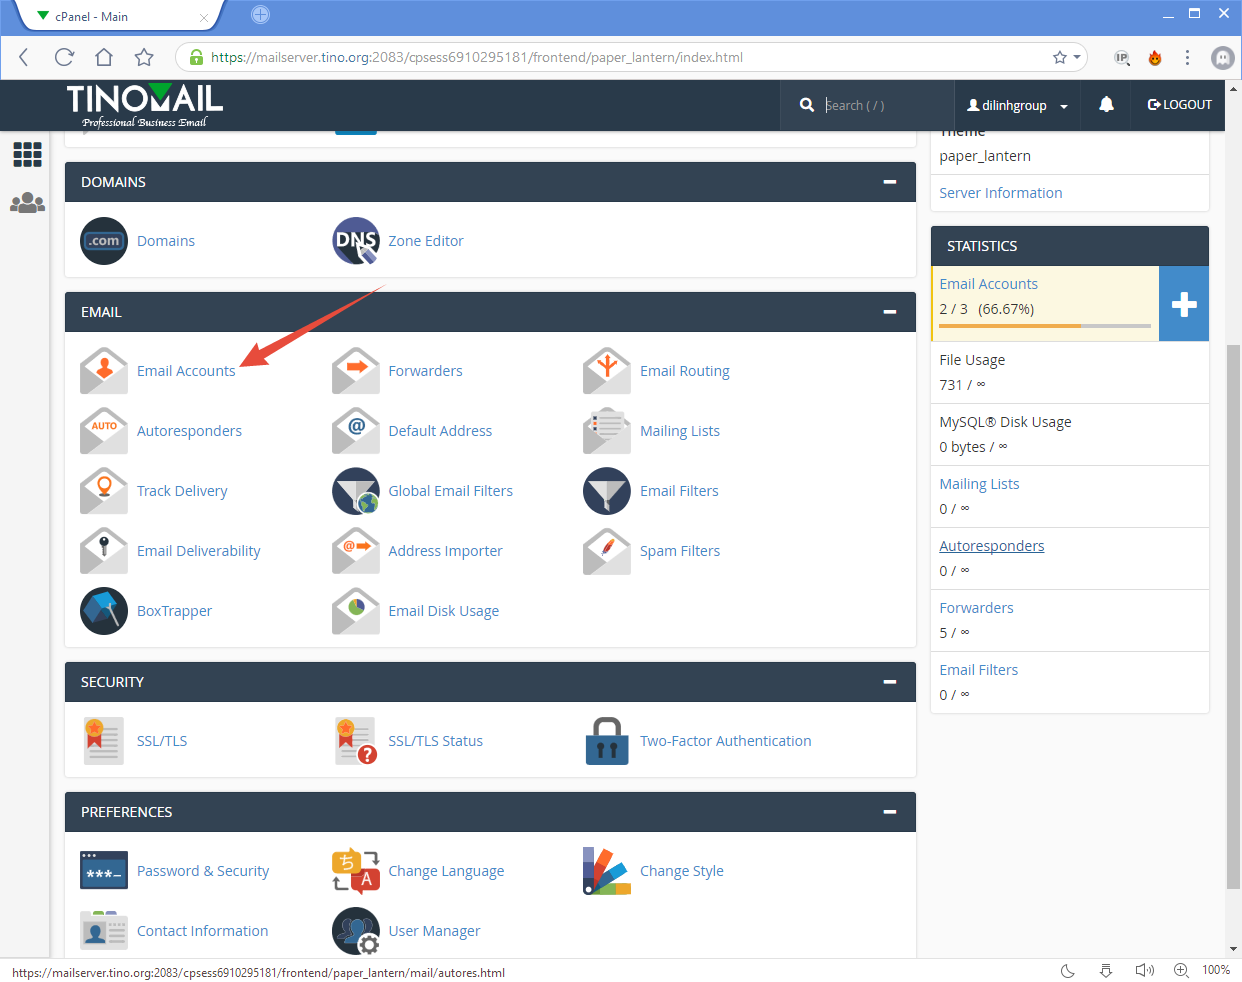 [cPanel] - Email Accounts 4